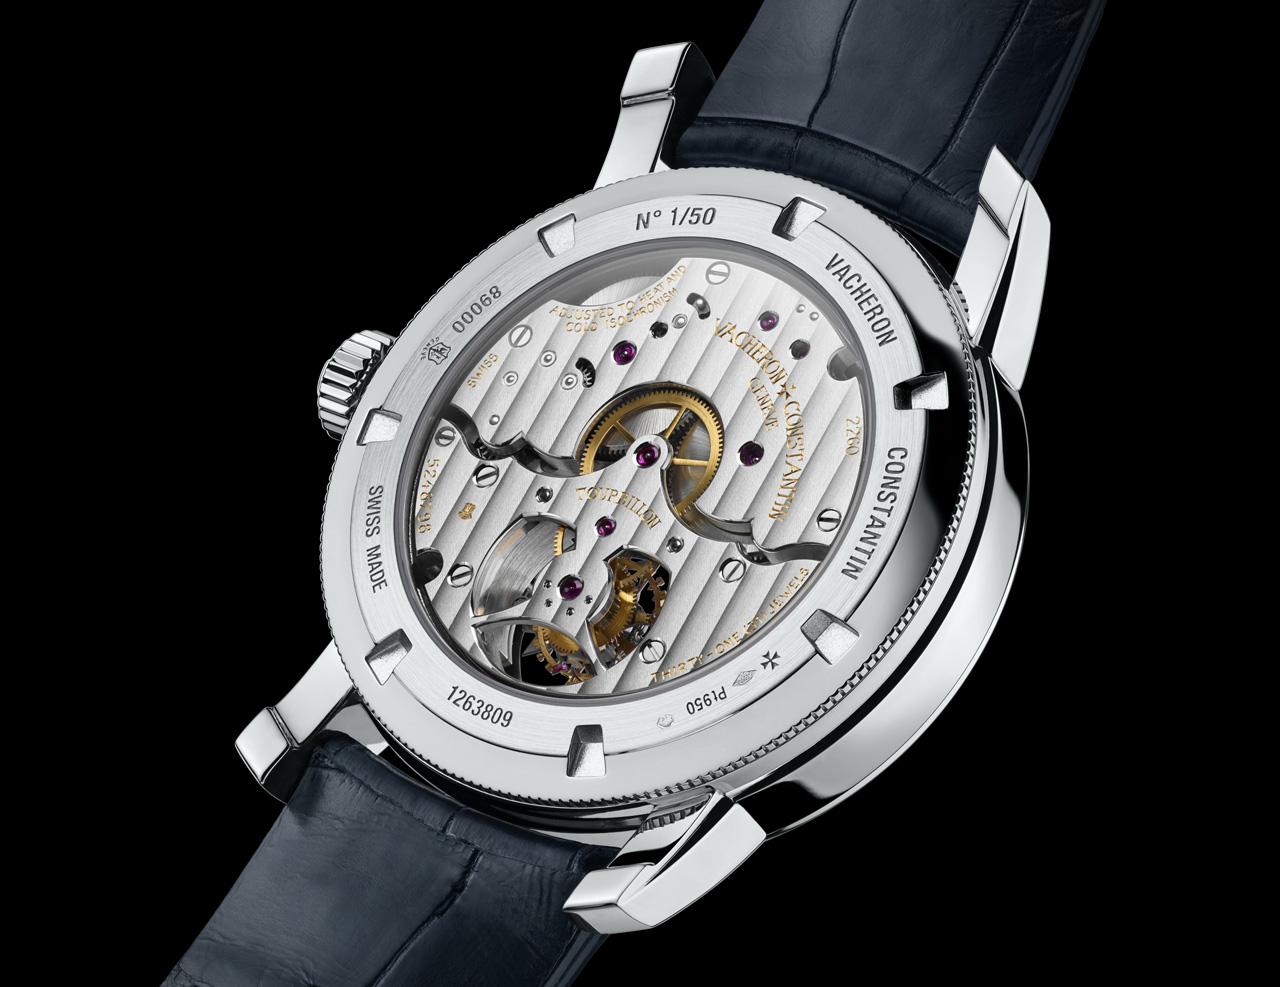 Vacheron Constantin Patrimony Traditionnelle tourbillon 14 jours back